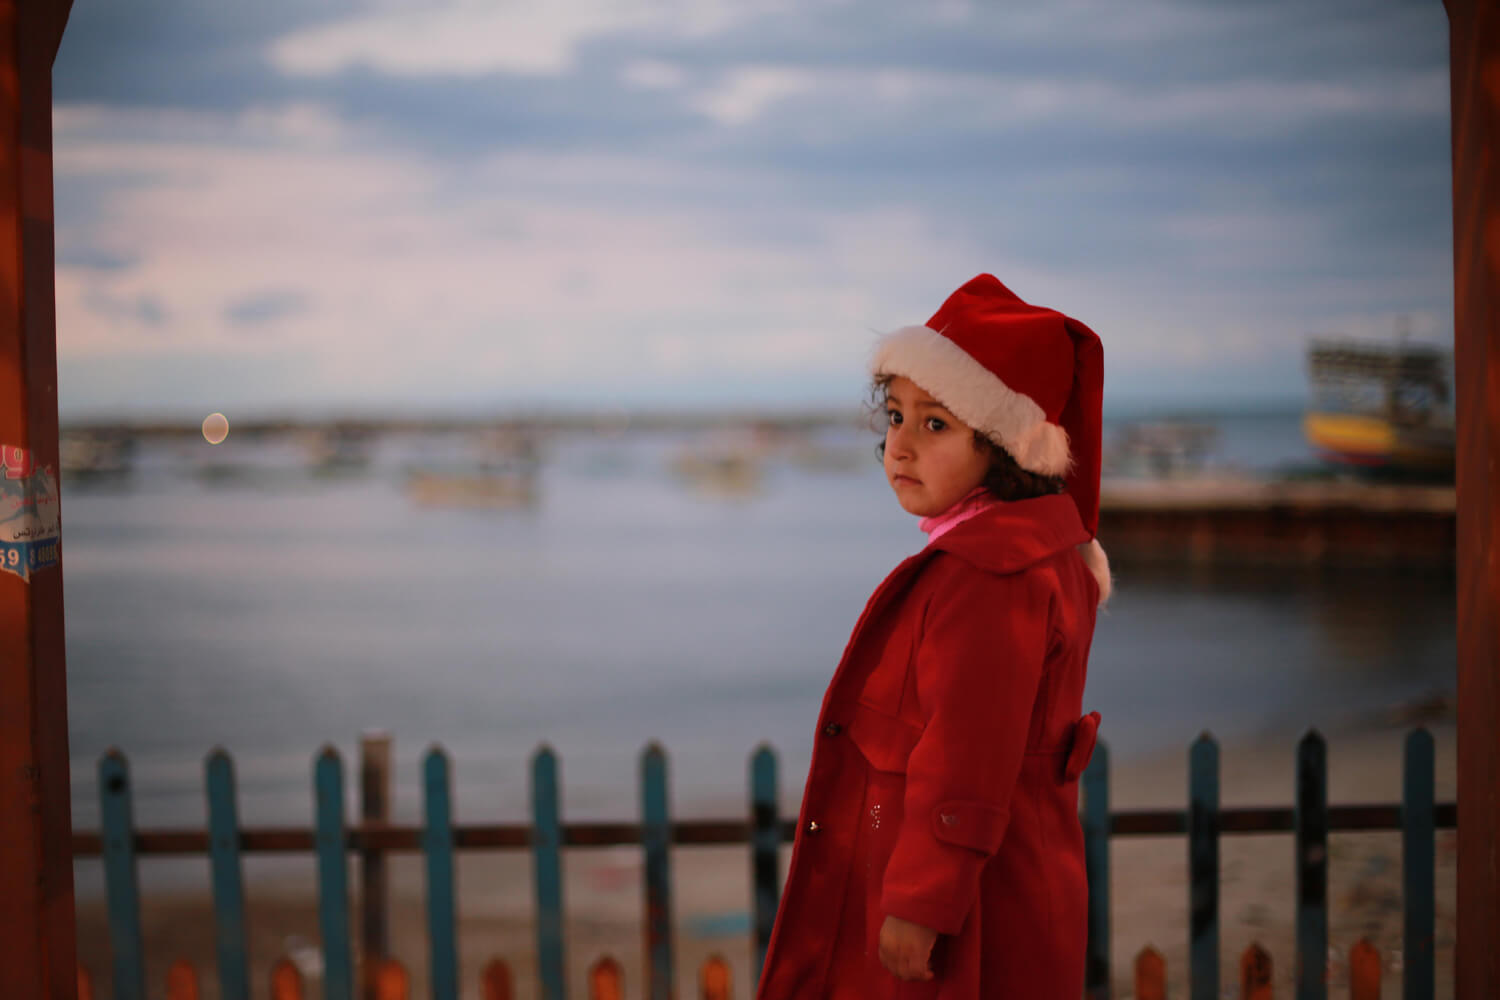 Children dressed as Santa Claus enjoy the Gaza port (Photo: Mohammed Asad)